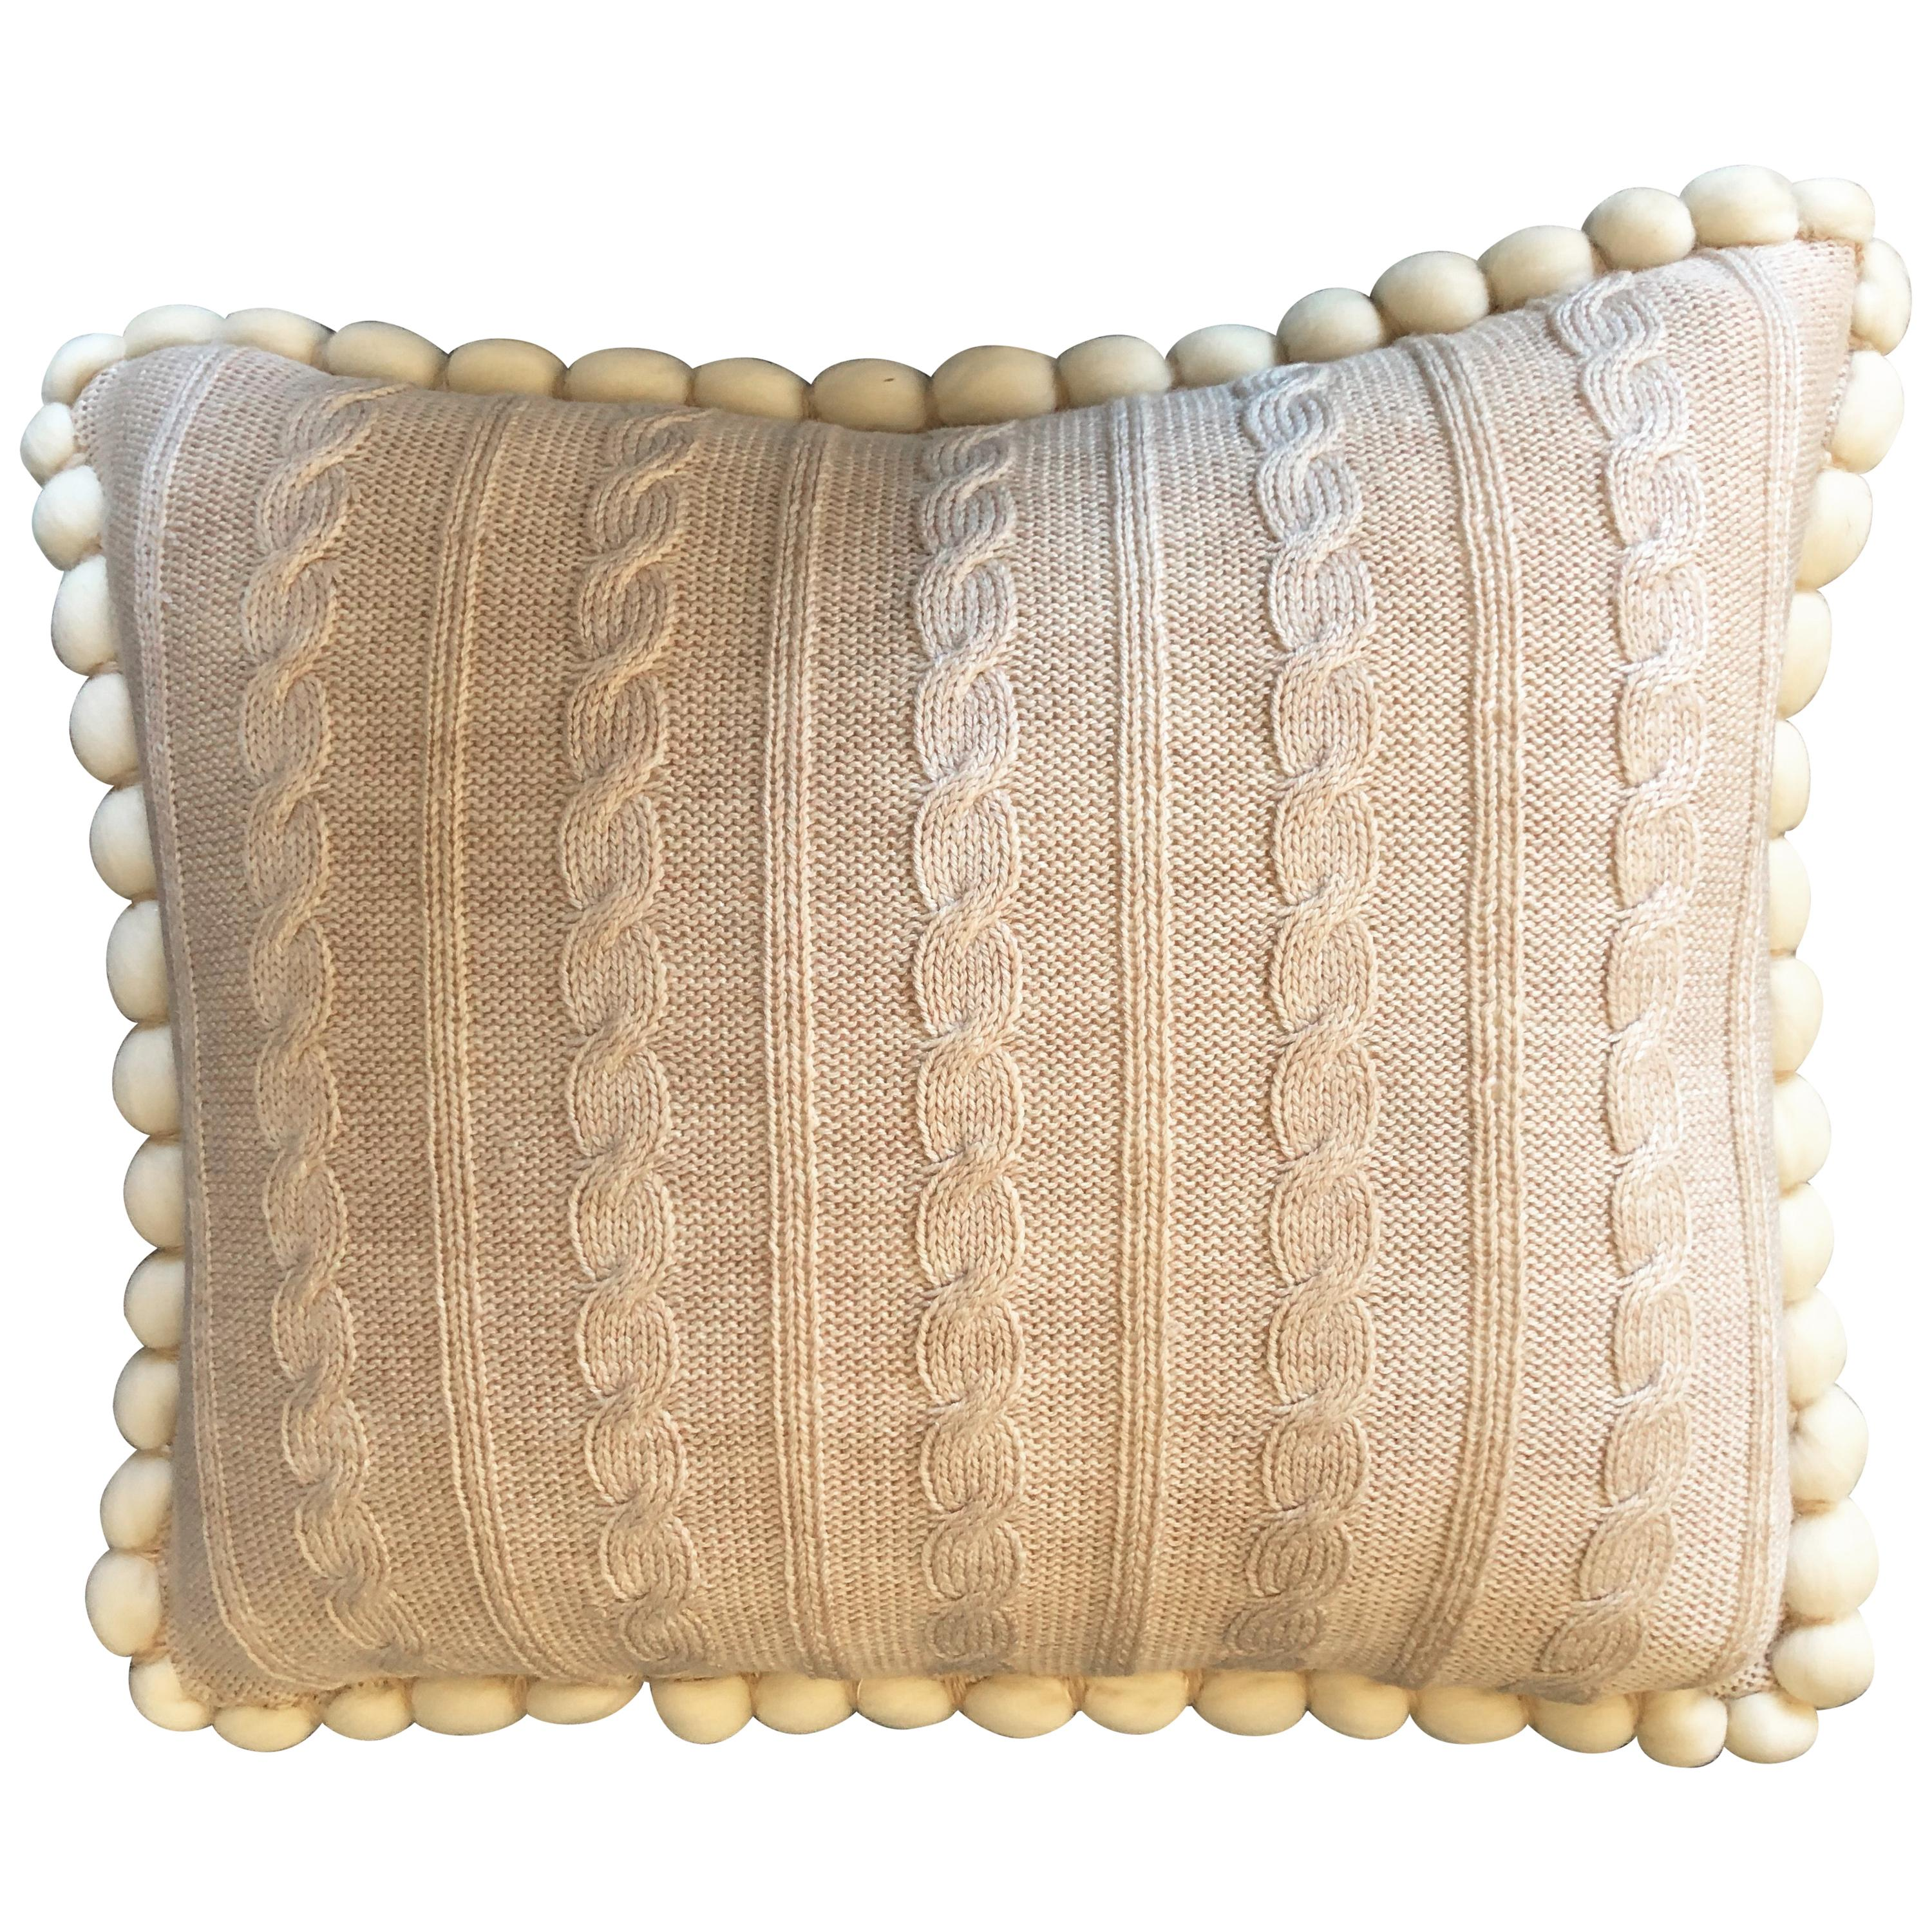 "Italian Merino Wool ""Cableknit"" Pillow by Le Lampade"